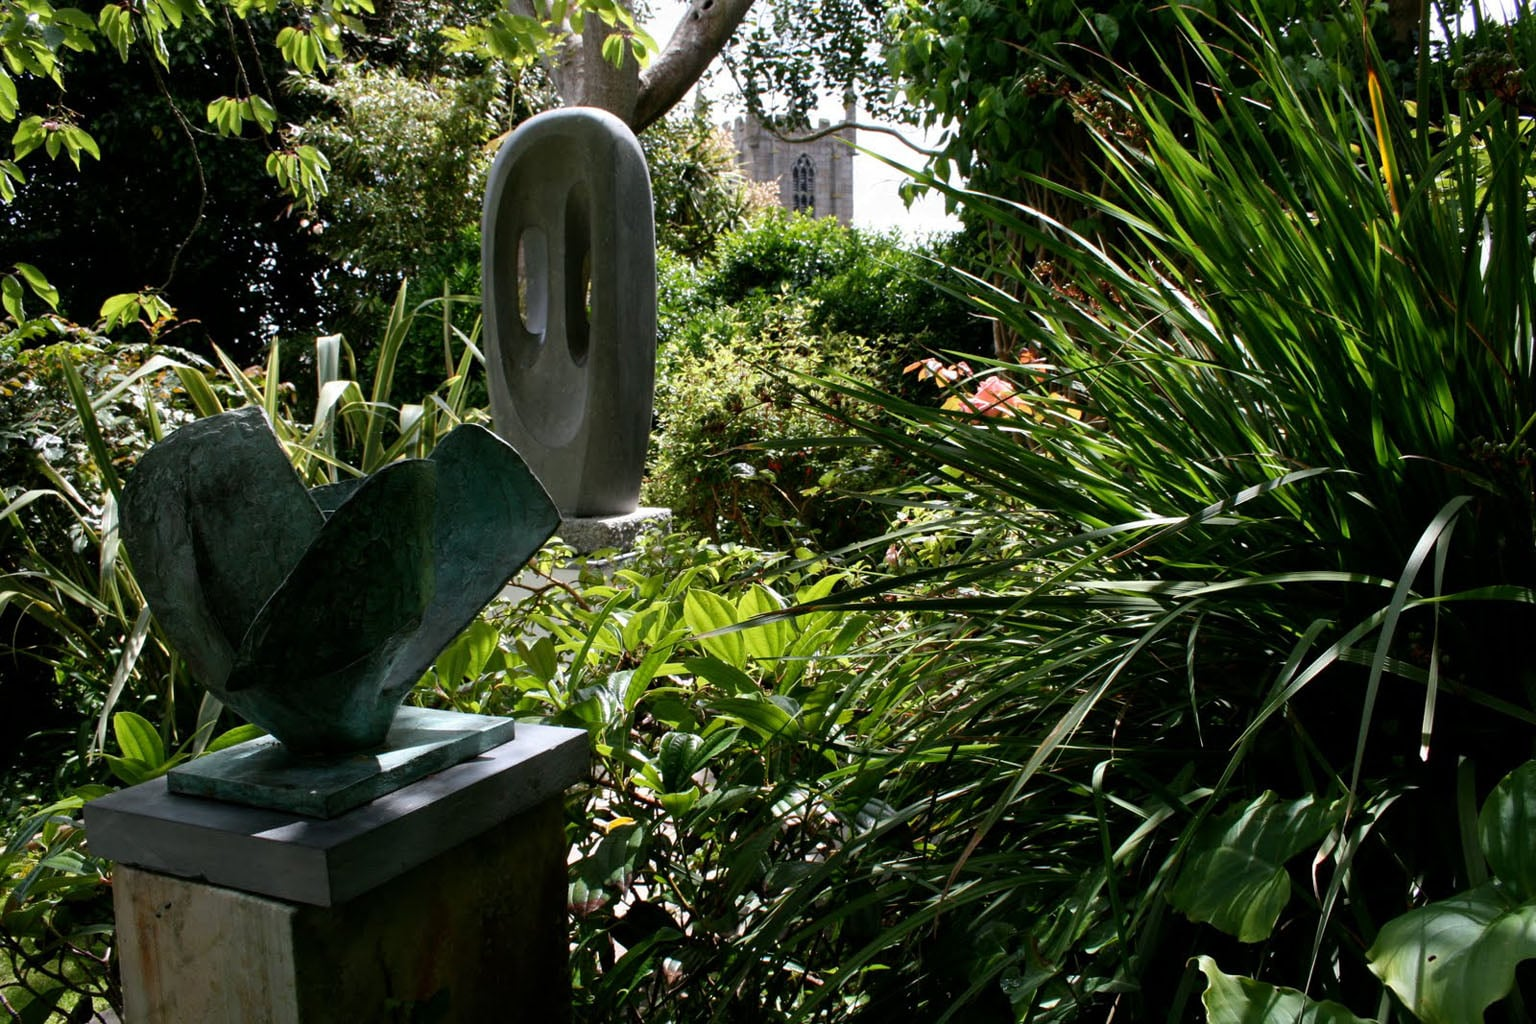 3. Barbara Hepworth Museum and Sculpture Garden, Cornwall - 50% off entry with National Art Pass